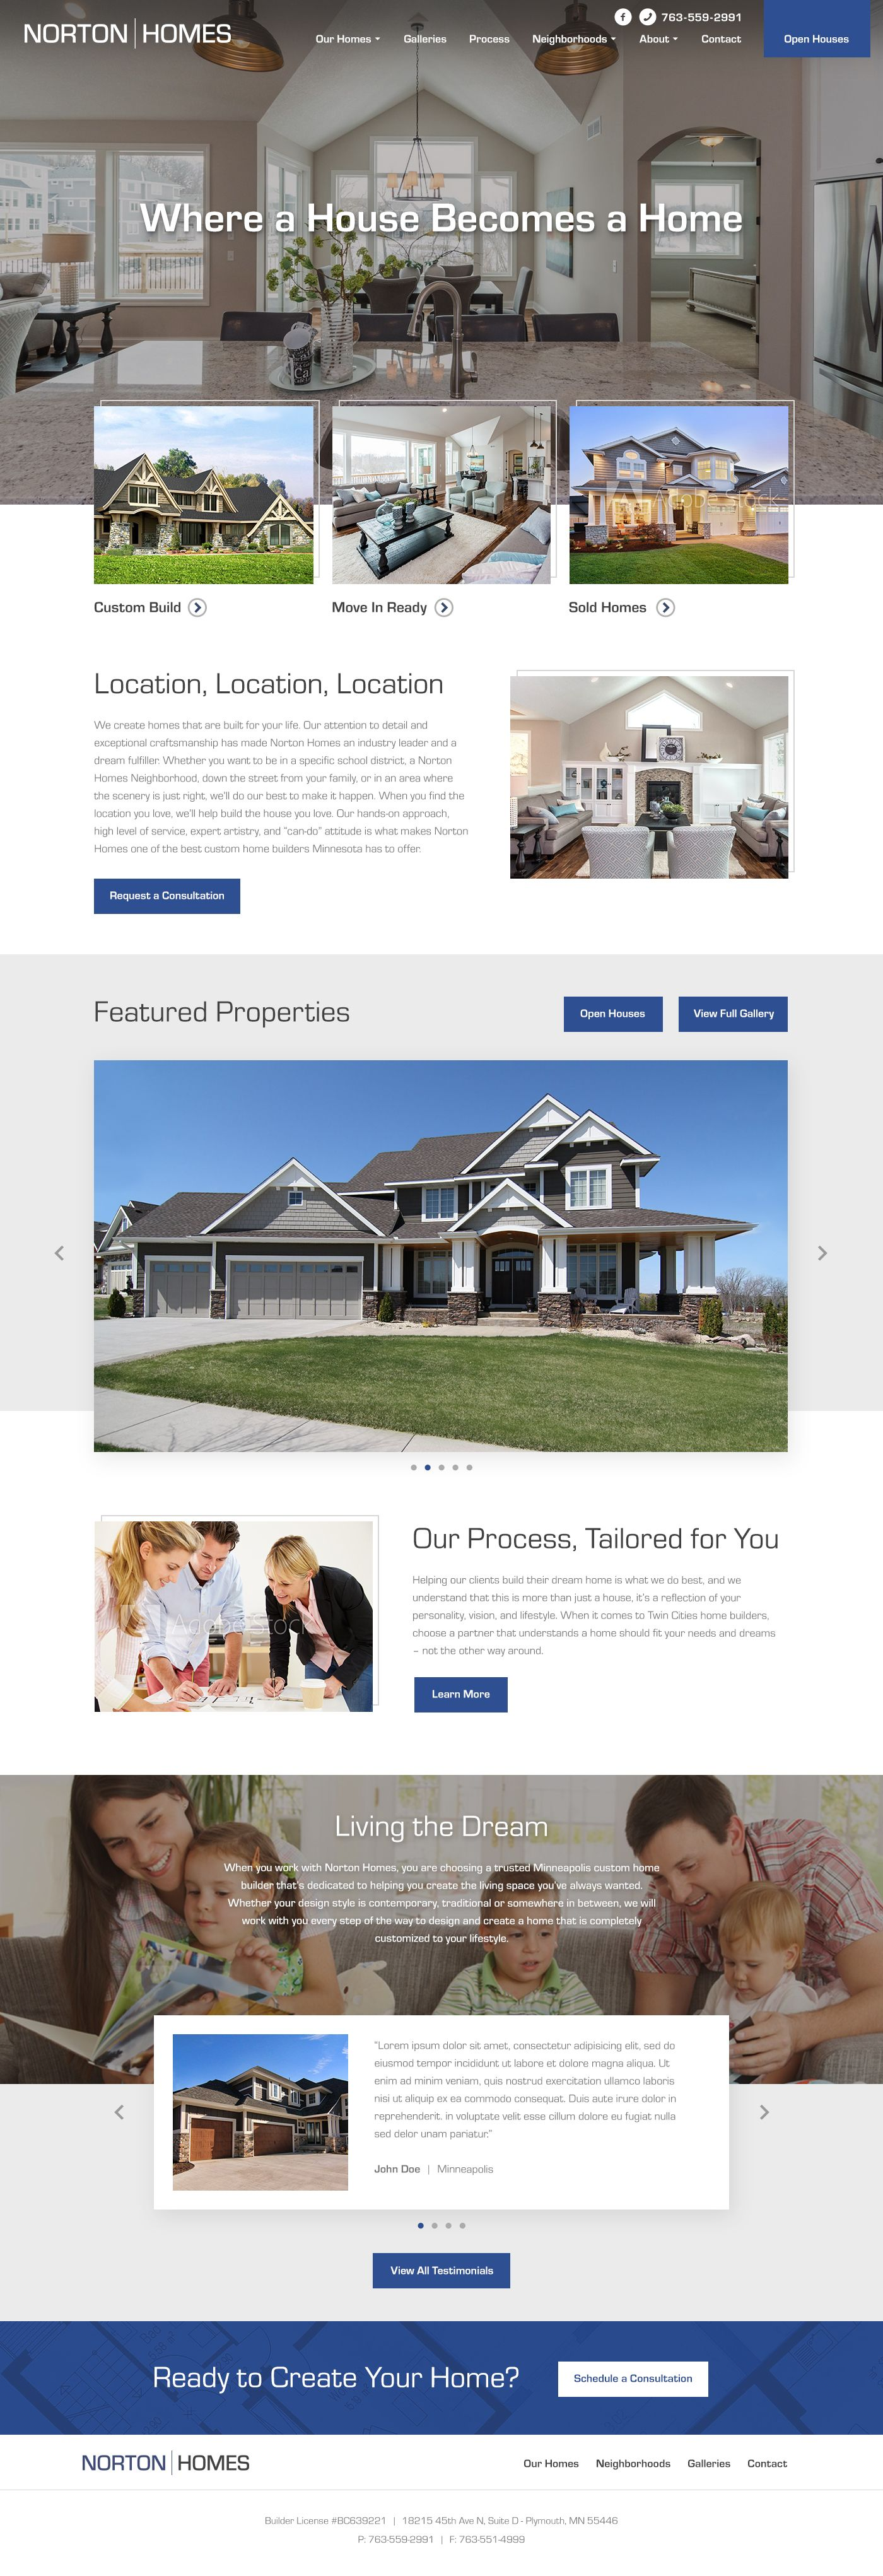 Awesome Home Builder Website Design By: Mike Delsing